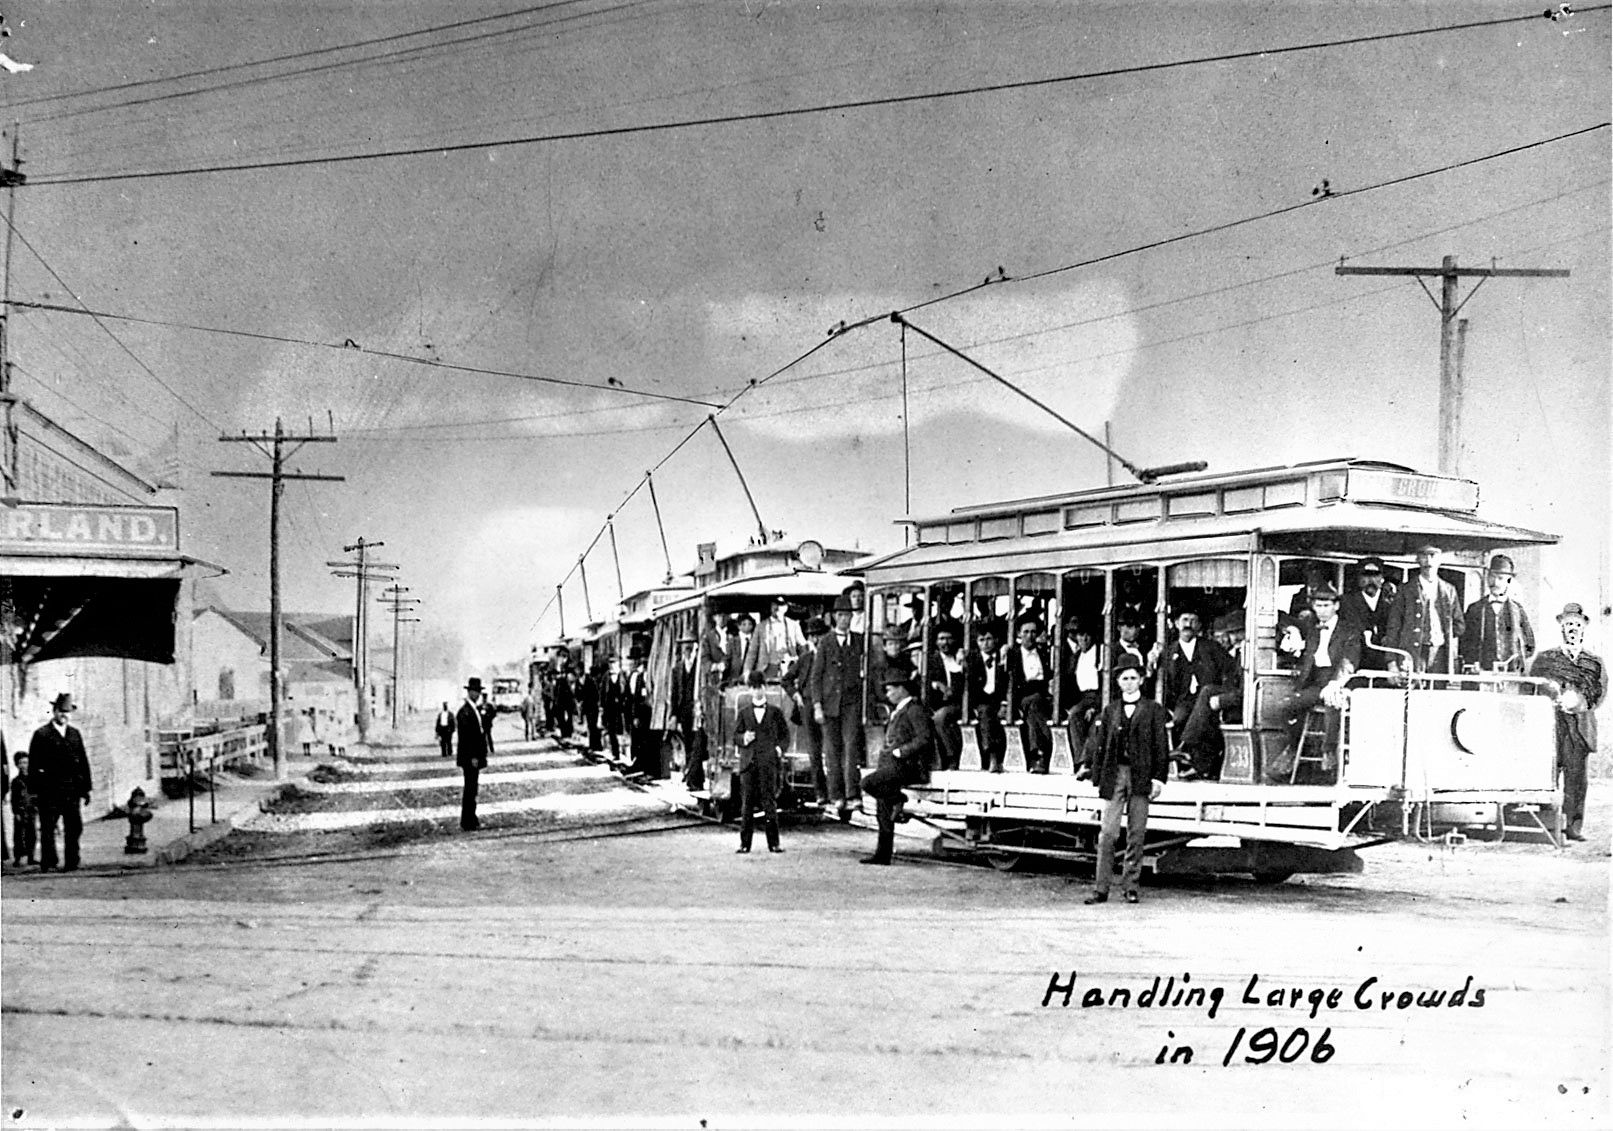 Streetcars filled up with passengers during the 1906 State Fair of Texas. Trolleys were often open-air to make riding during the Texas heat more tolerable.